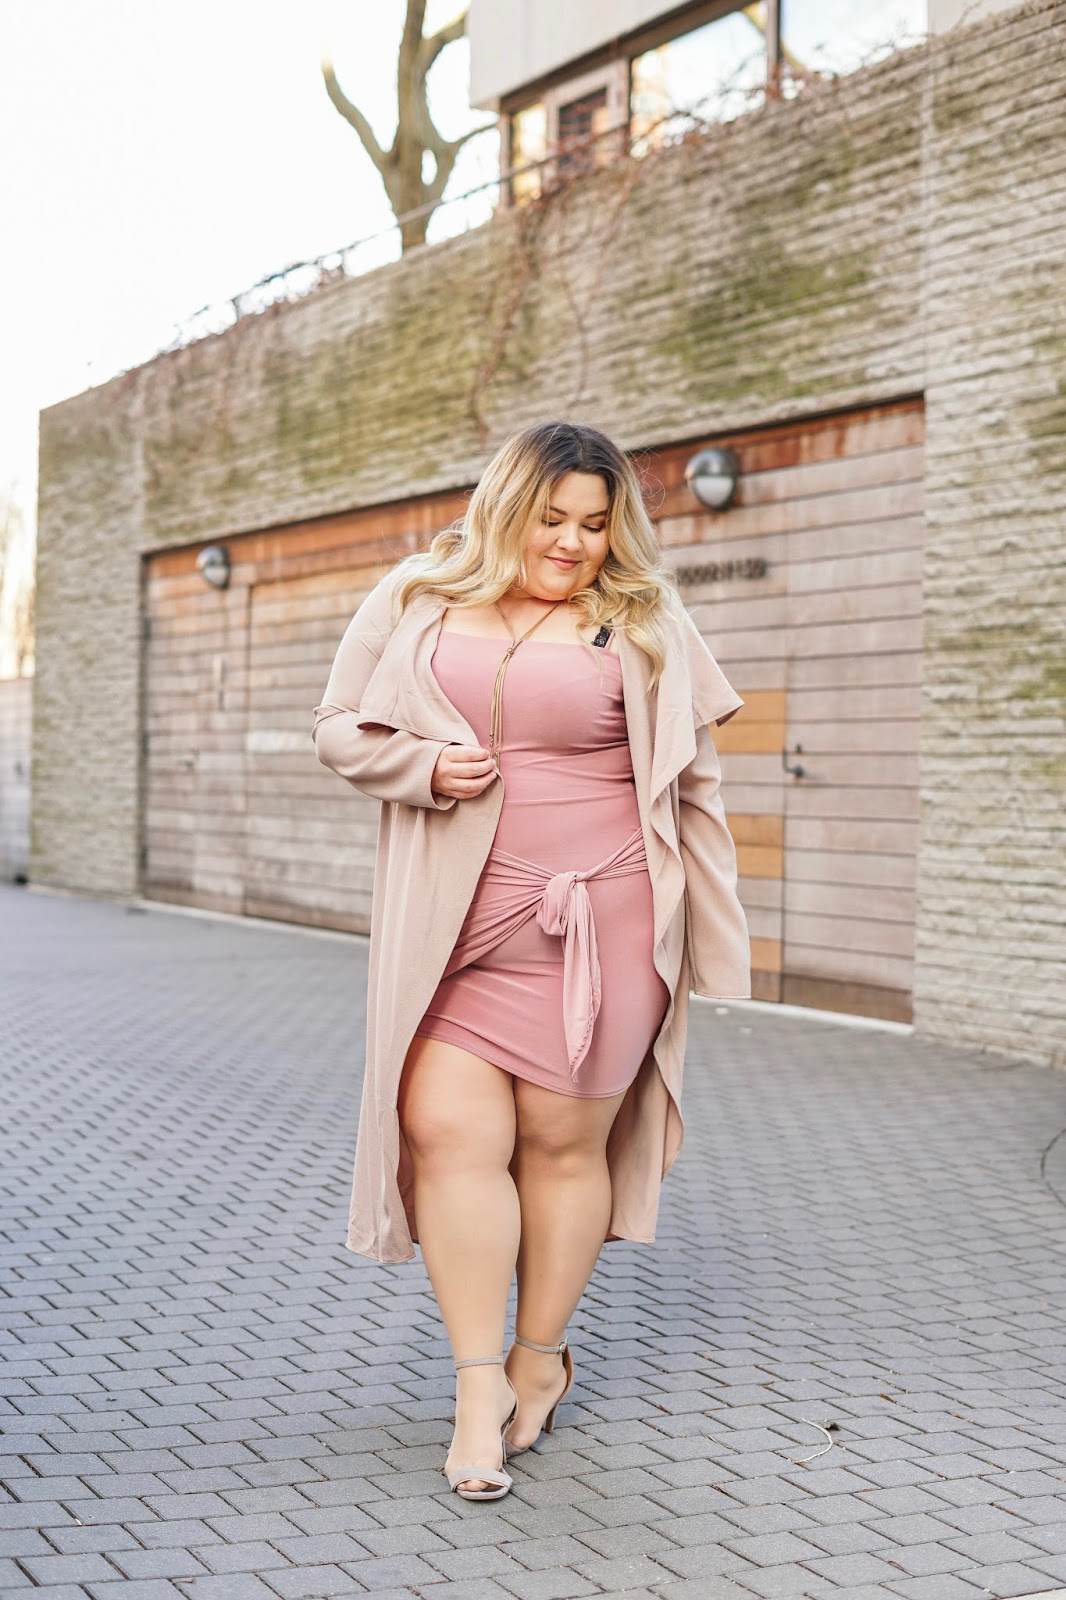 natalie Craig, natalie in the city, Chicago fashion blogger, plus size fashion blogger, Chicago model, petite plus size fashion, petite plus size model, chi town, affordable plus size fashion, curvy girls, fashion nova curve, fashion nova, mauve, plus size mini dress, trench coat, sexy plus size fashion, size 16, size 18